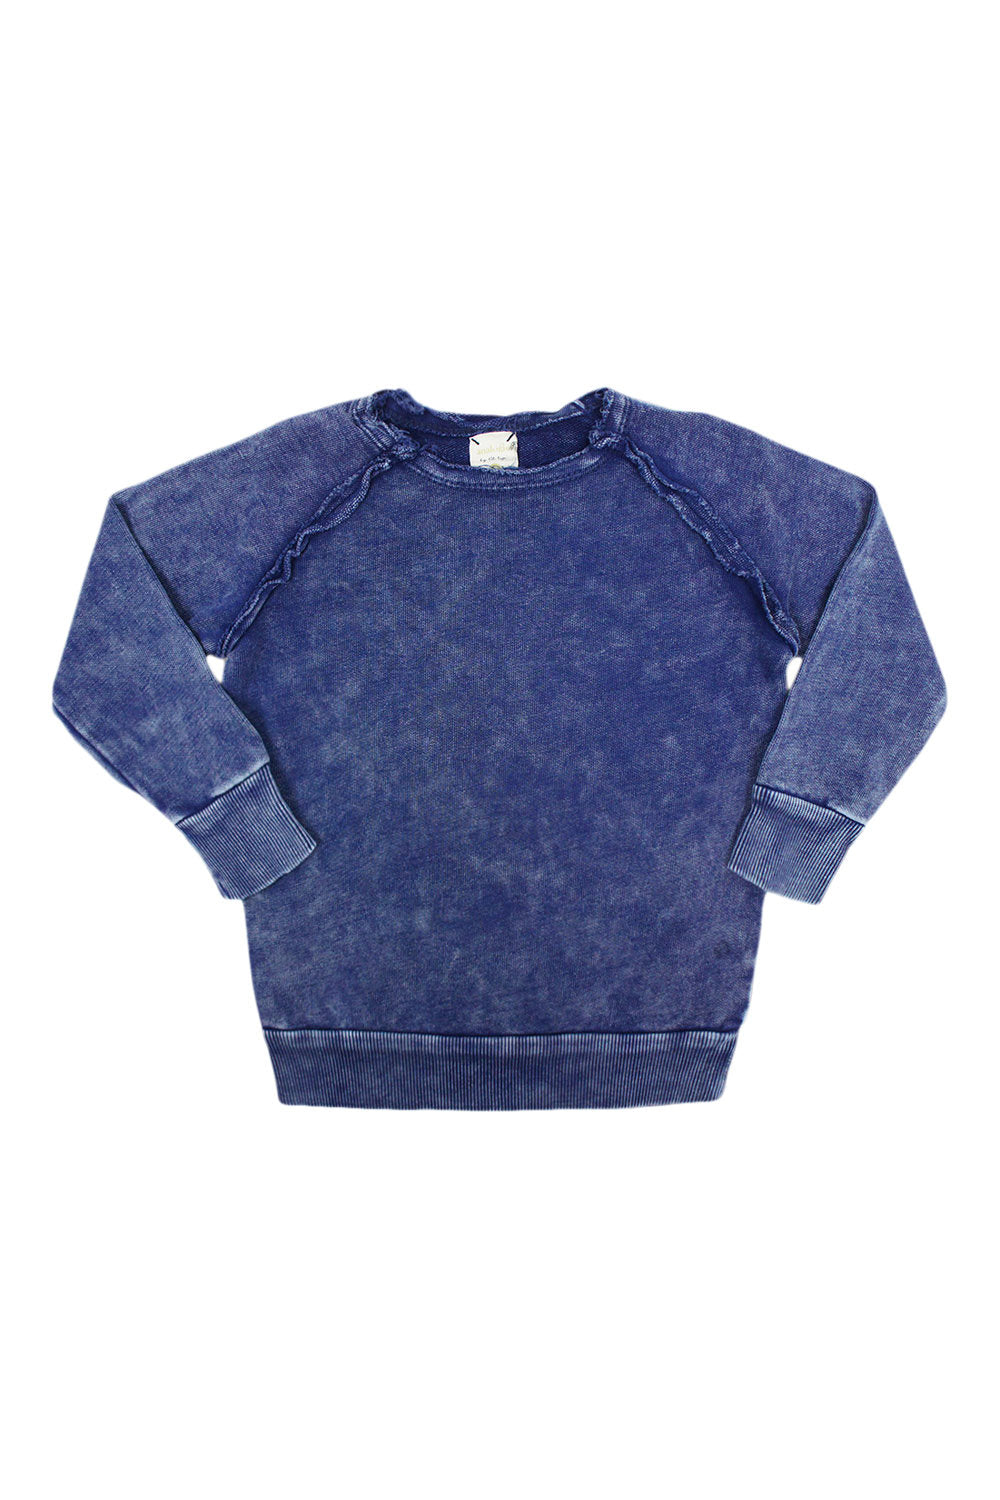 Analogie Blue Wash Denim Raglan Sweater